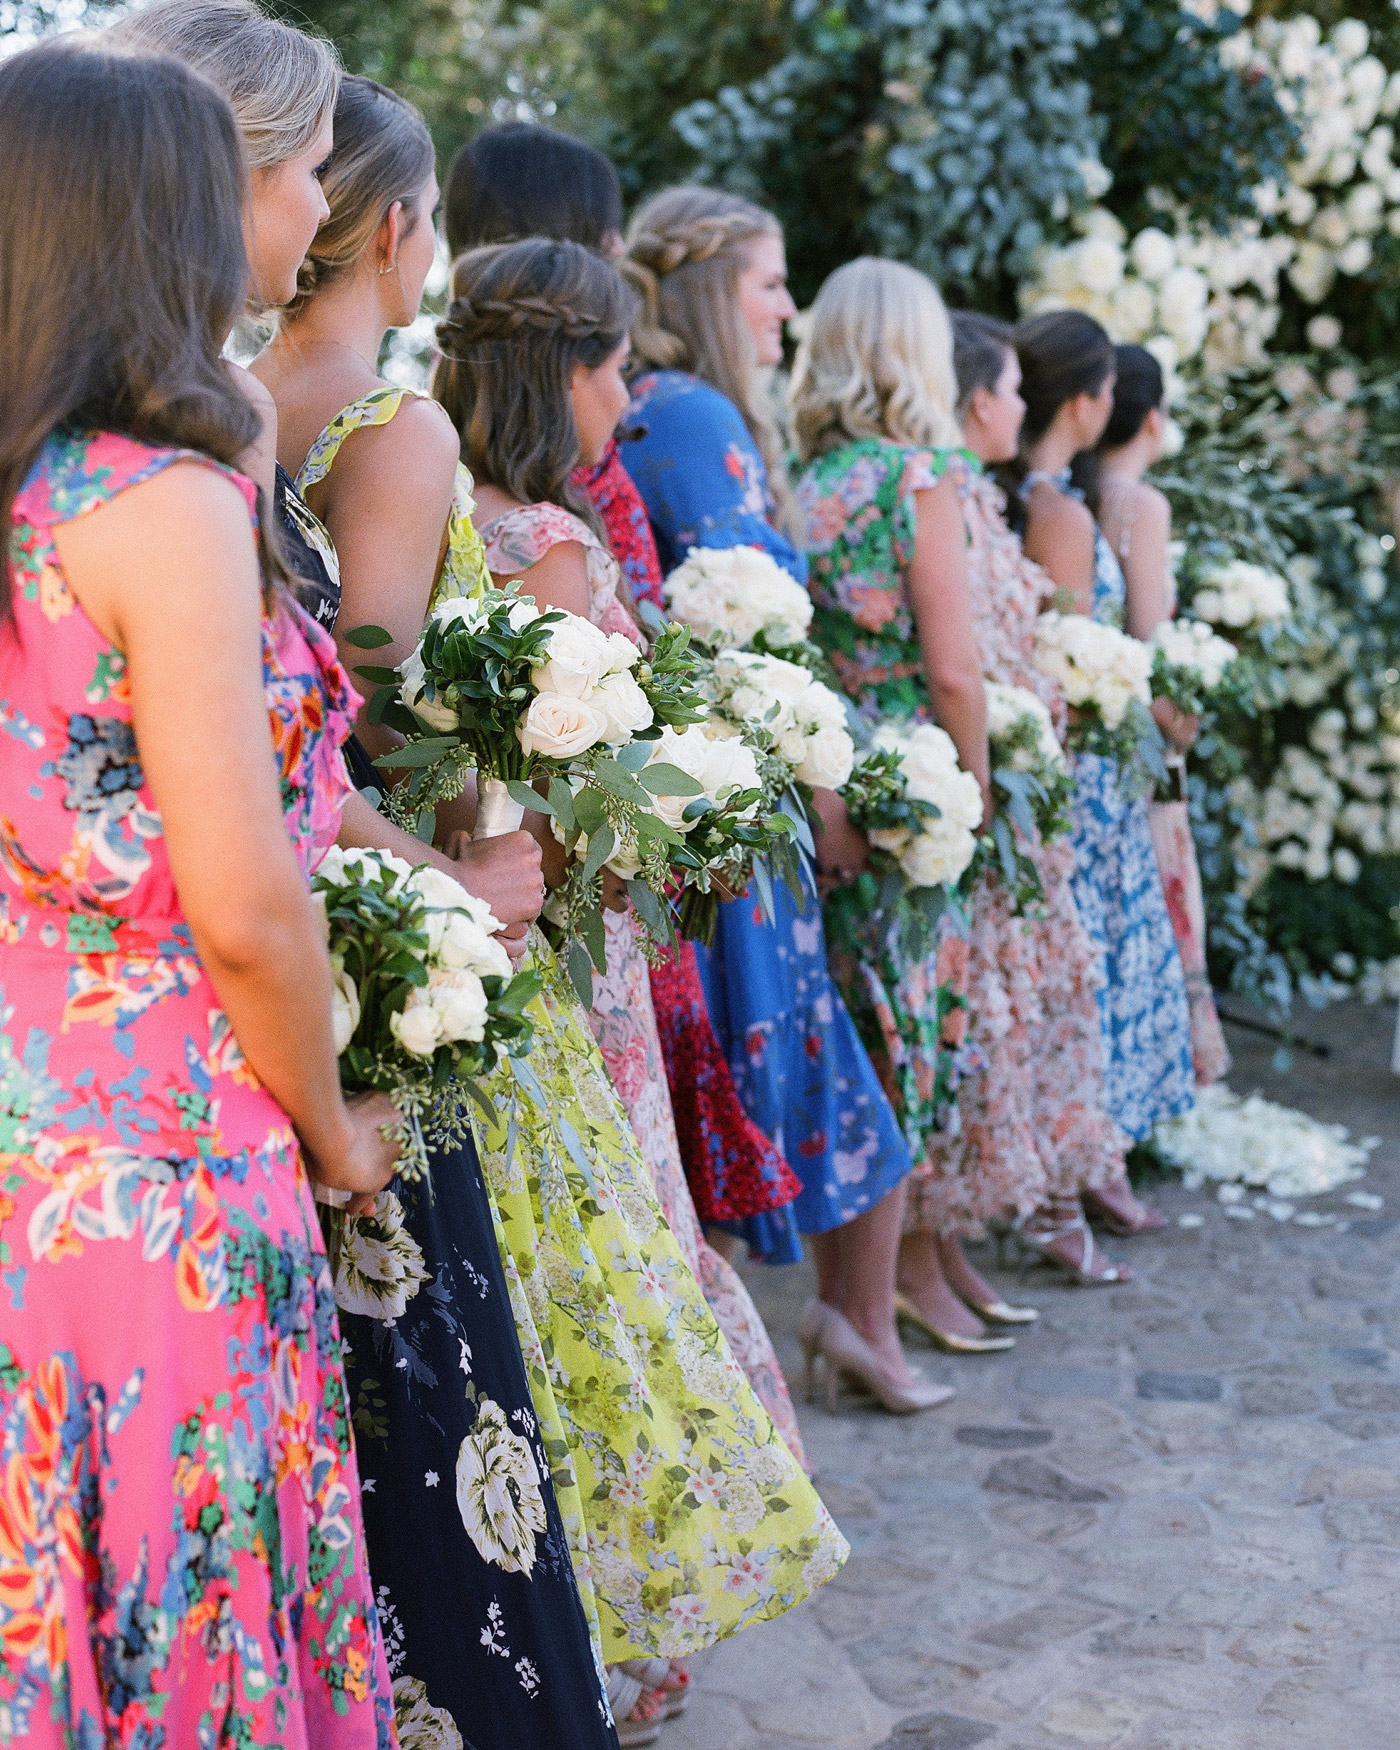 gloria's bridesmaids in colorful floral patterned dresses